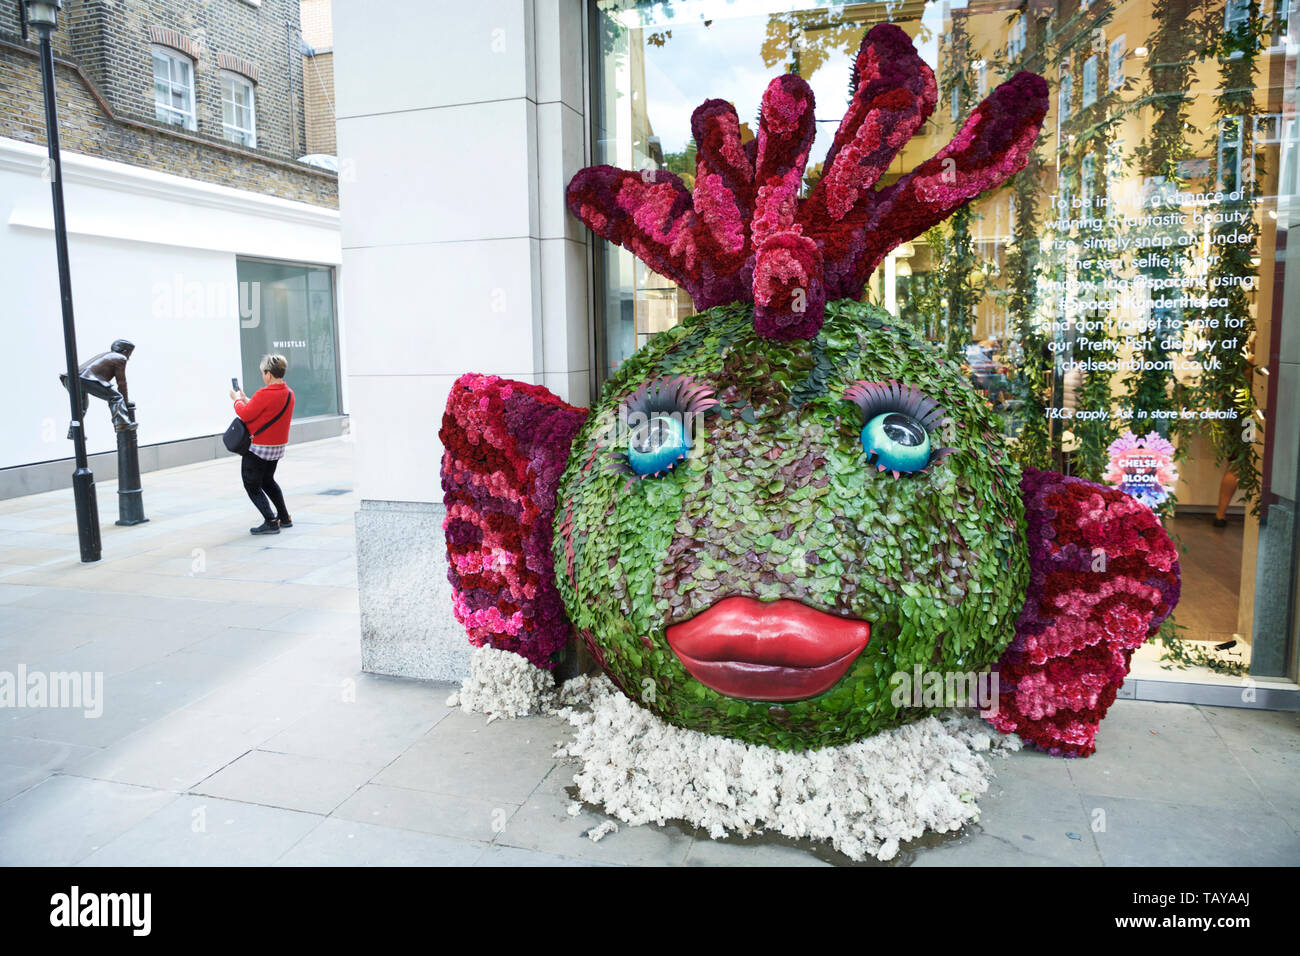 "Chelsea in Bloom - ""Pretty Fish"" floral sculpture, florist Larry Walshe - London, UK. - Stock Image"